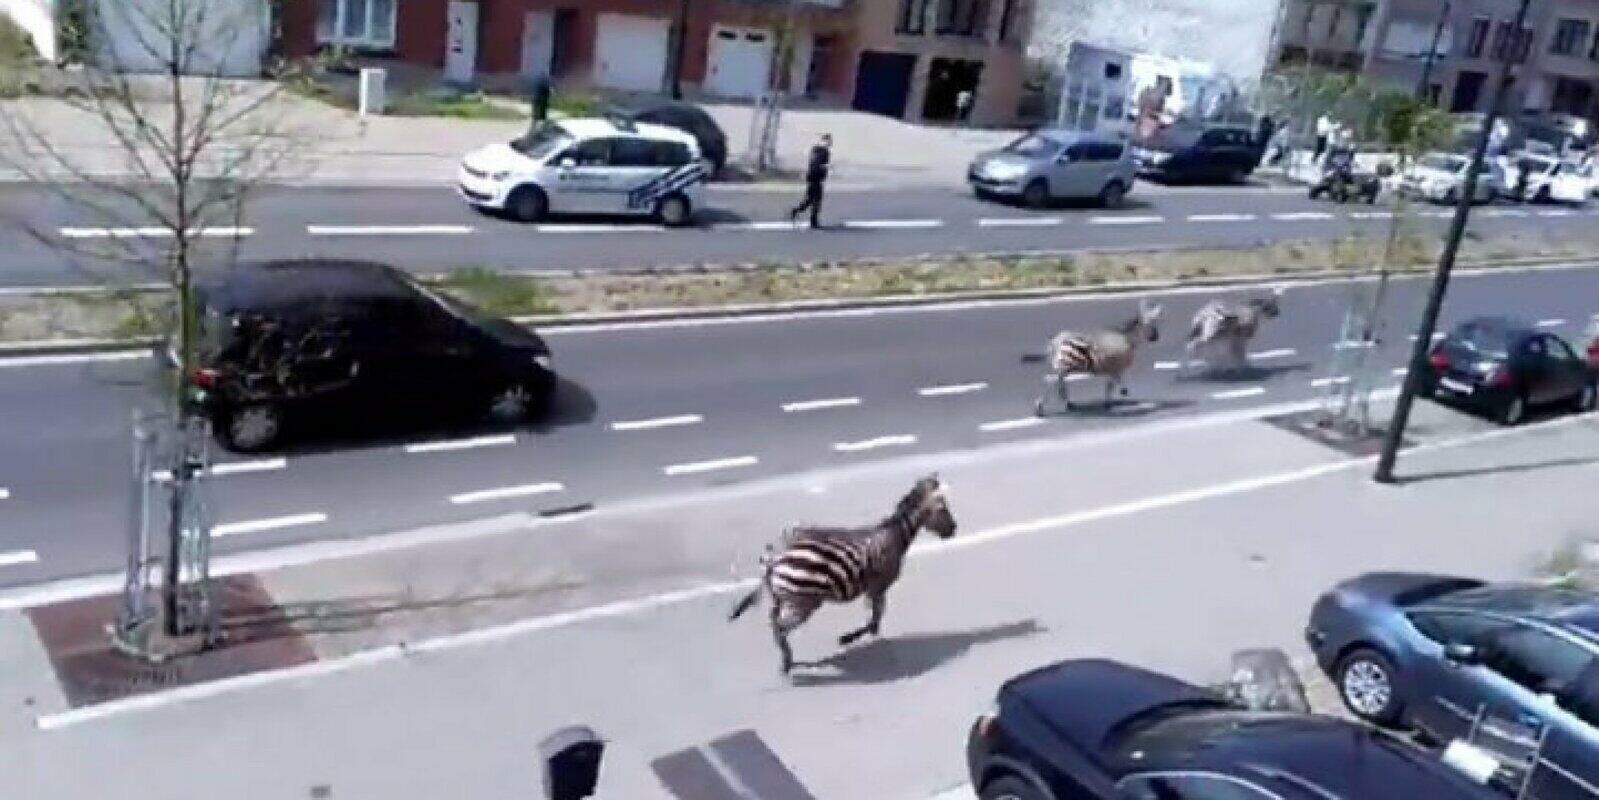 Boughton_Zebras in Belgium